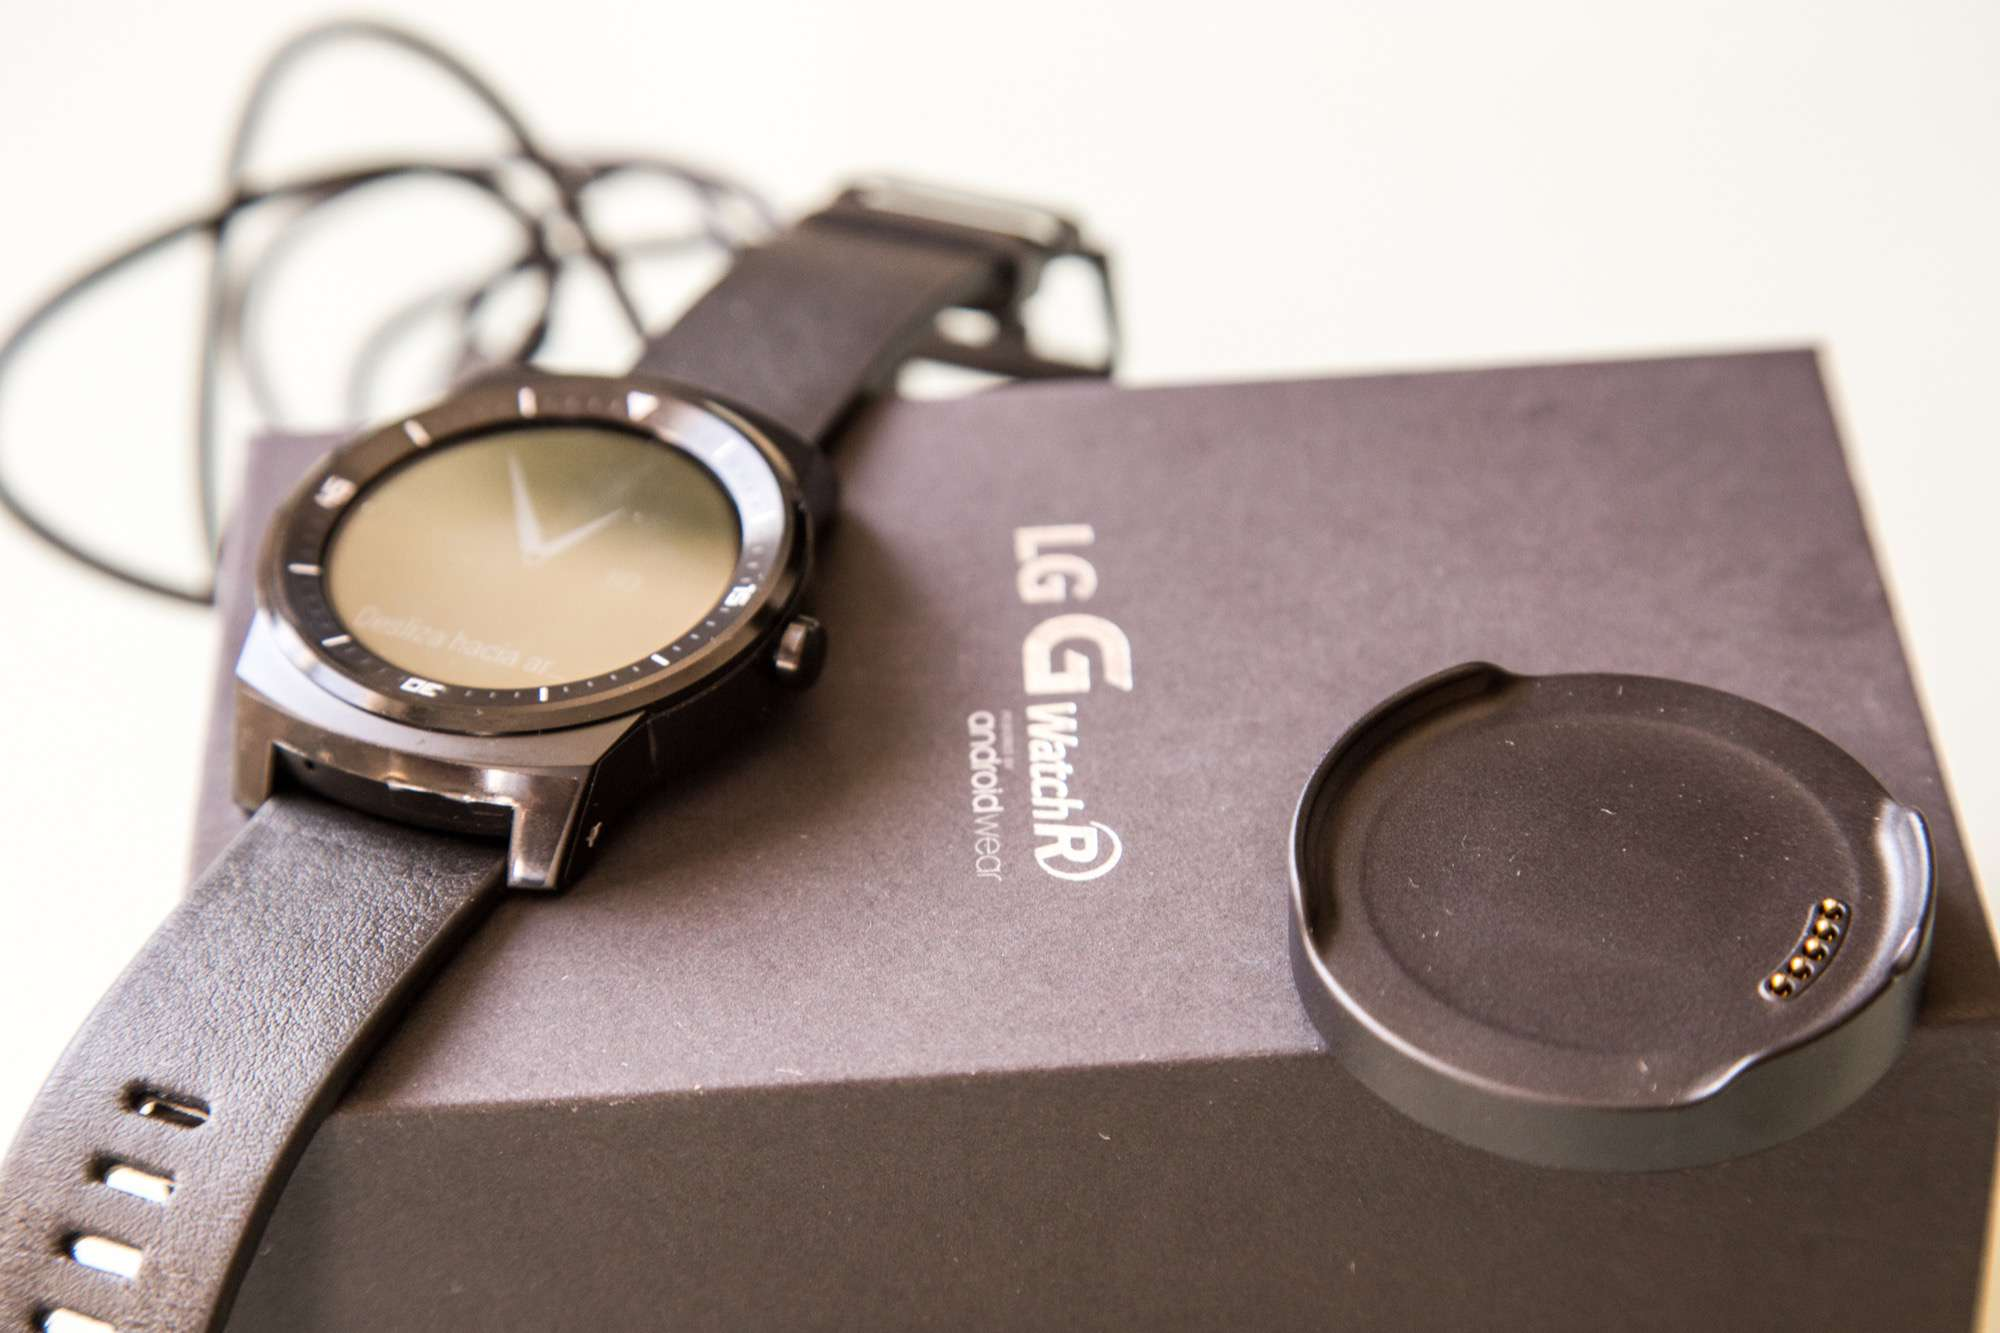 LG G Watch R Android Wear Desempaquetado Unboxing Analisis Review Español Apple